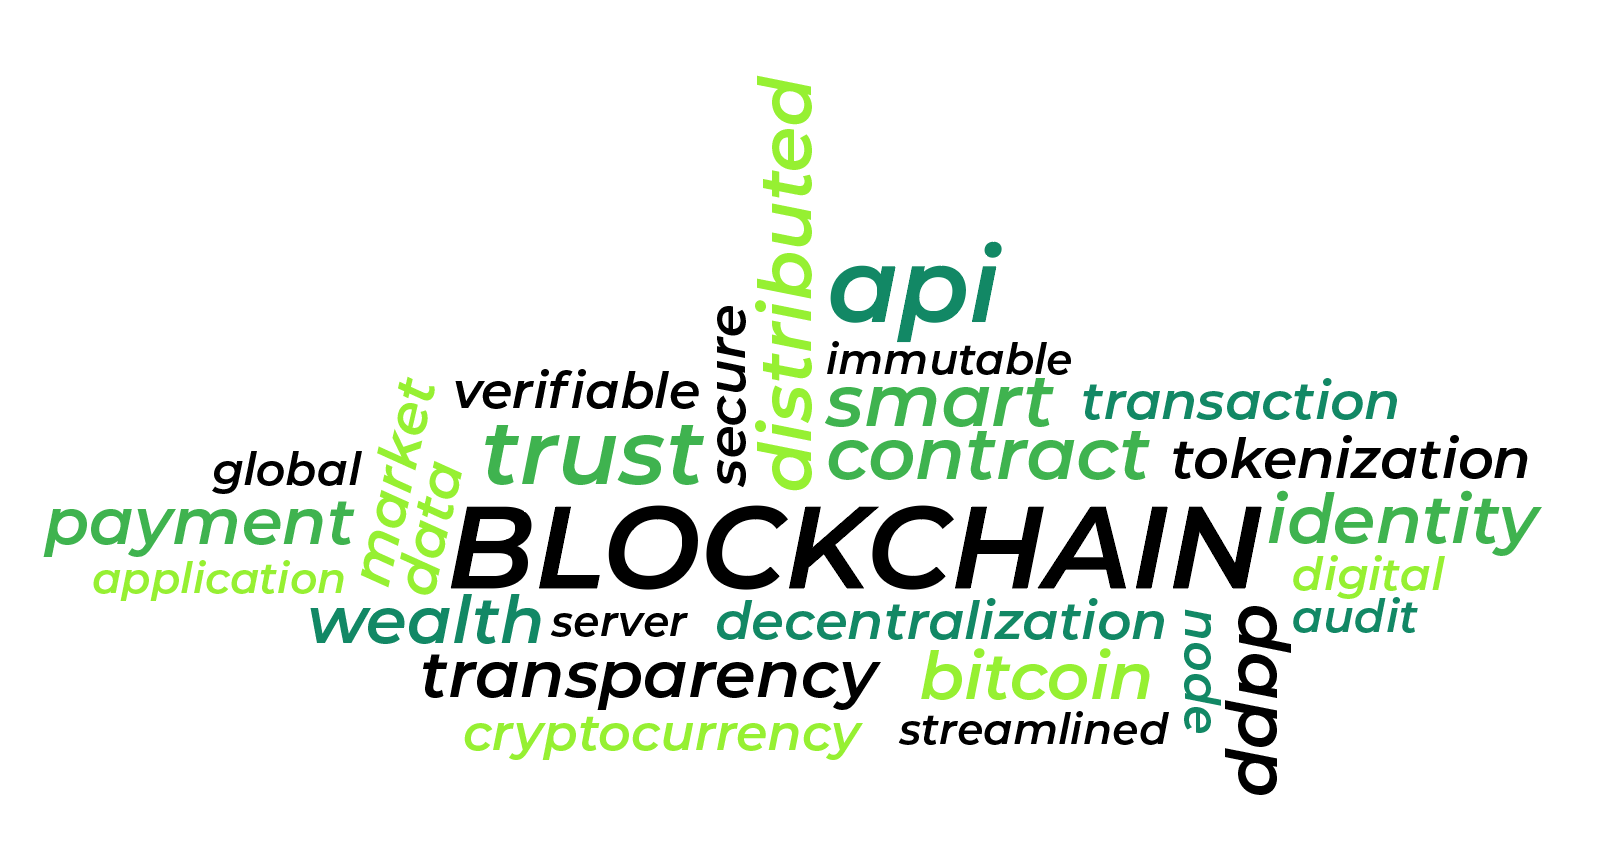 blockchain-word-map.png